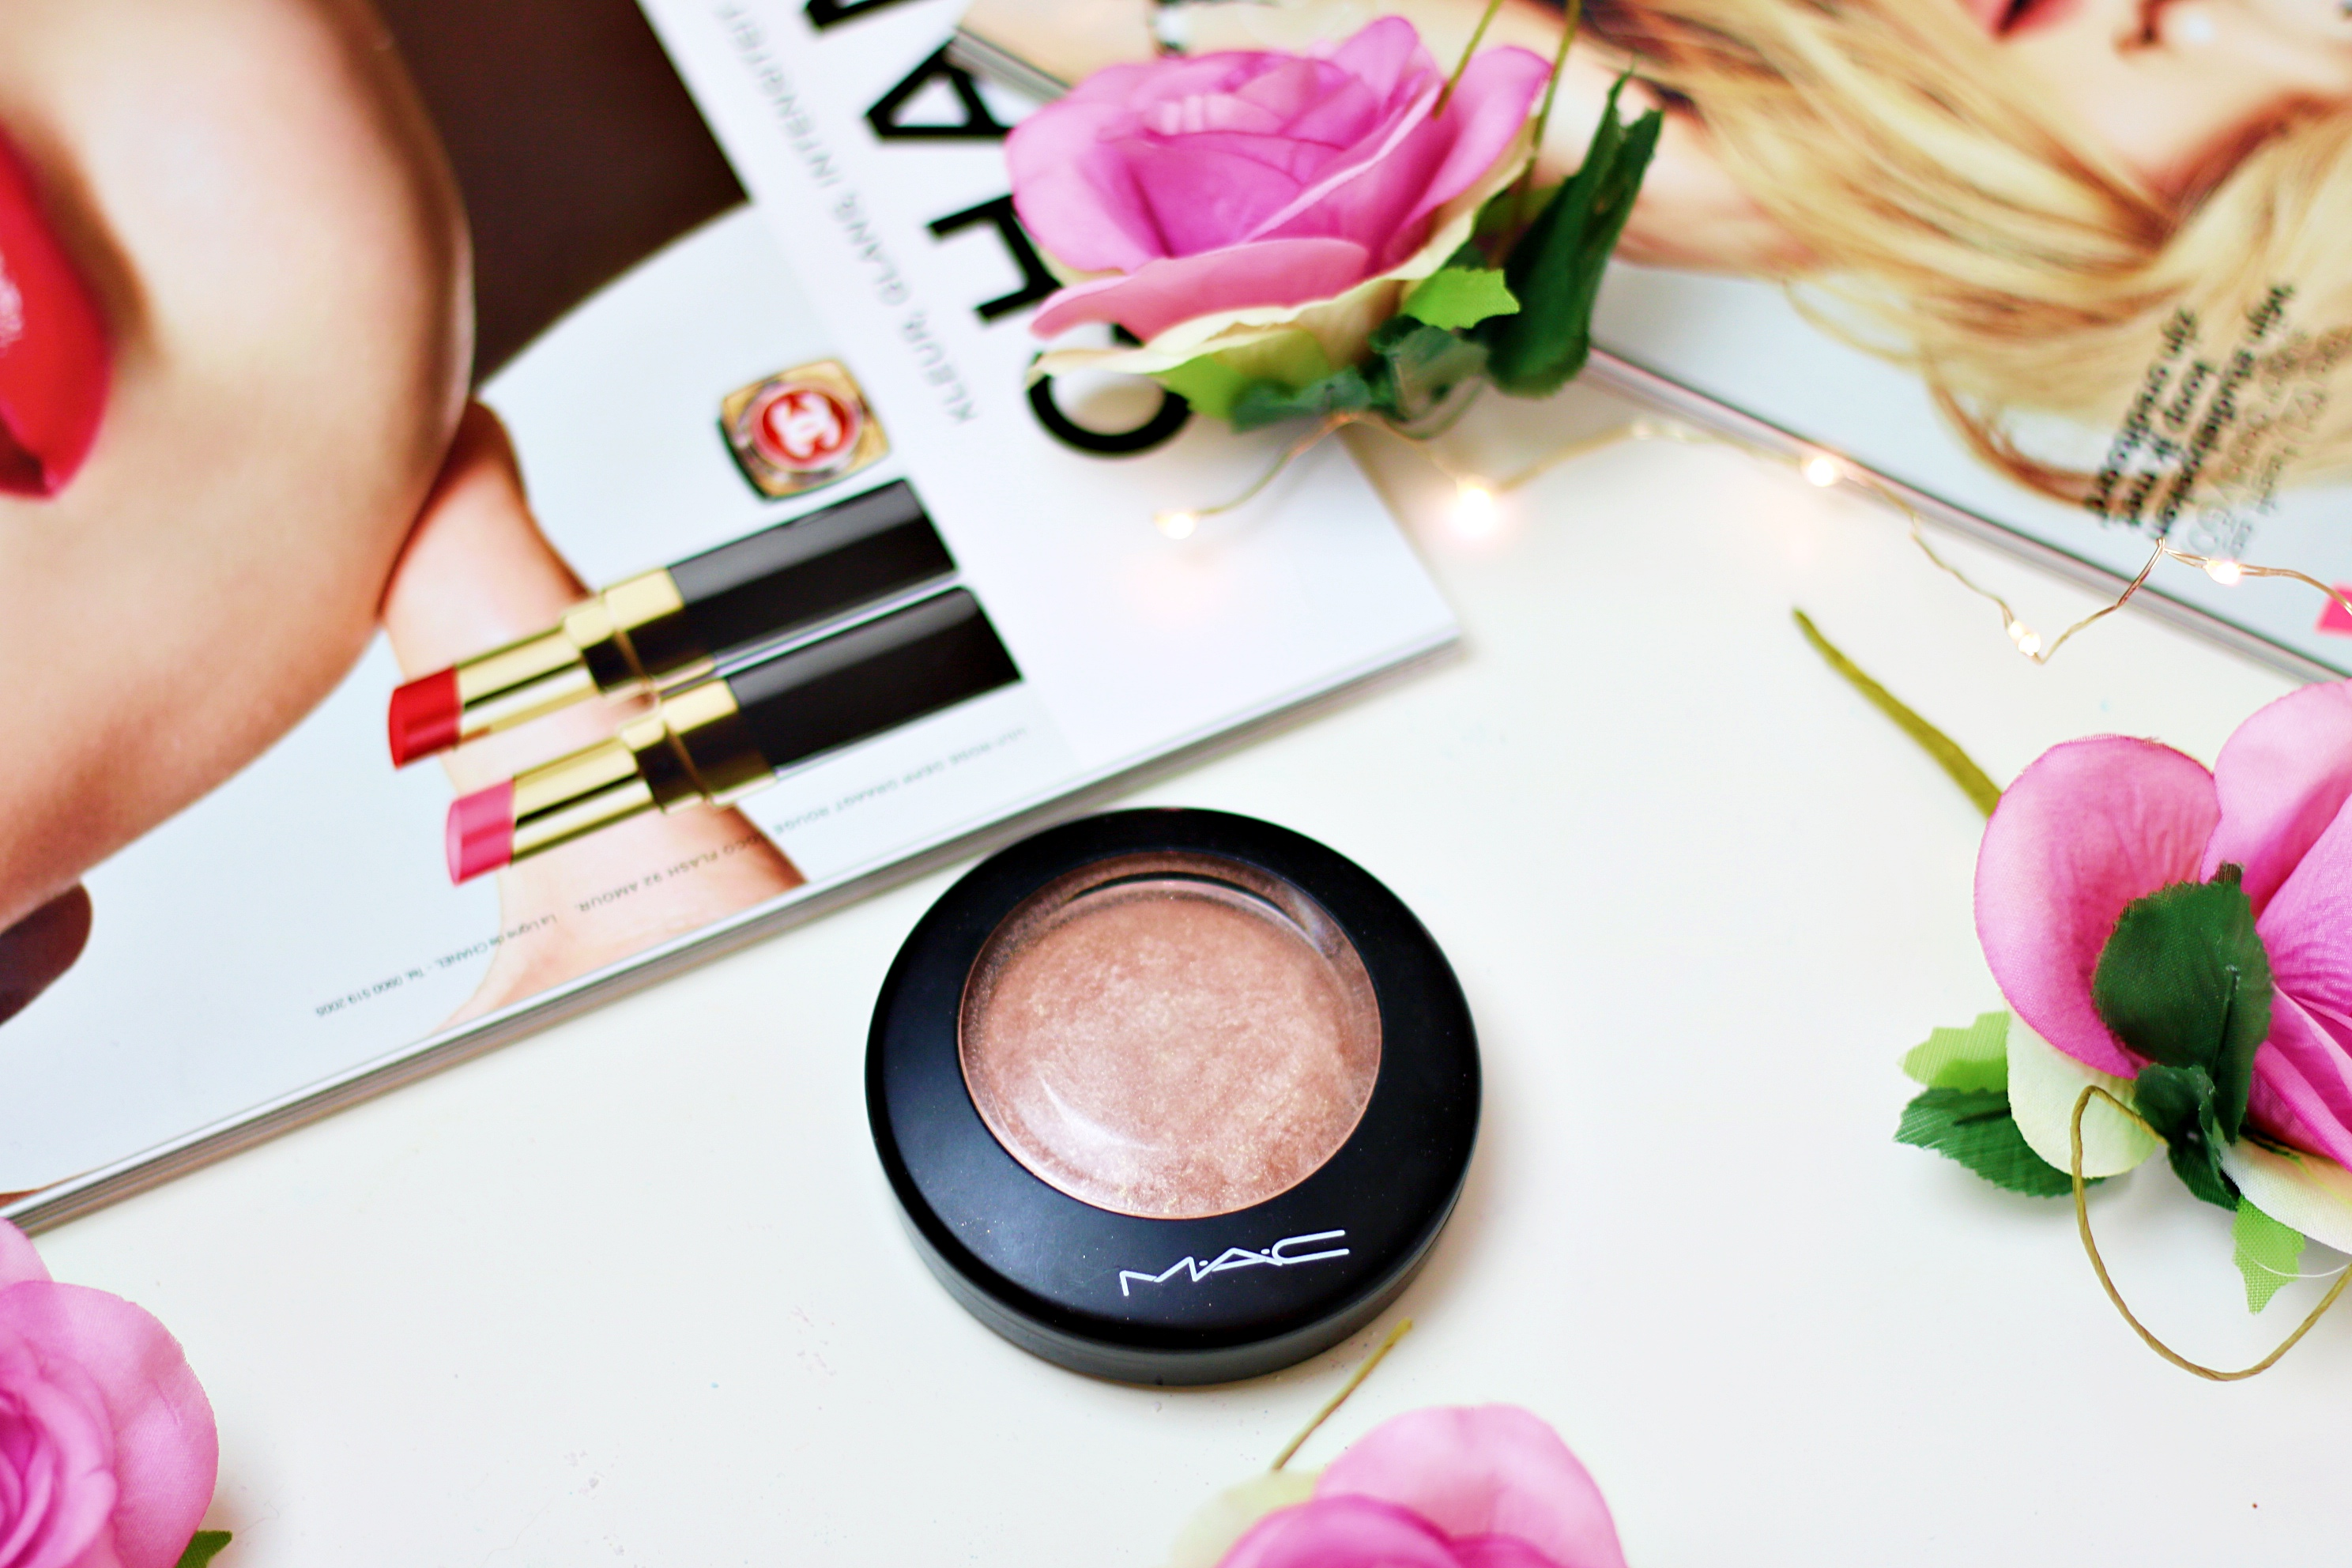 MAC Mineralized Skinfinish in Soft & Gentle: A re-review